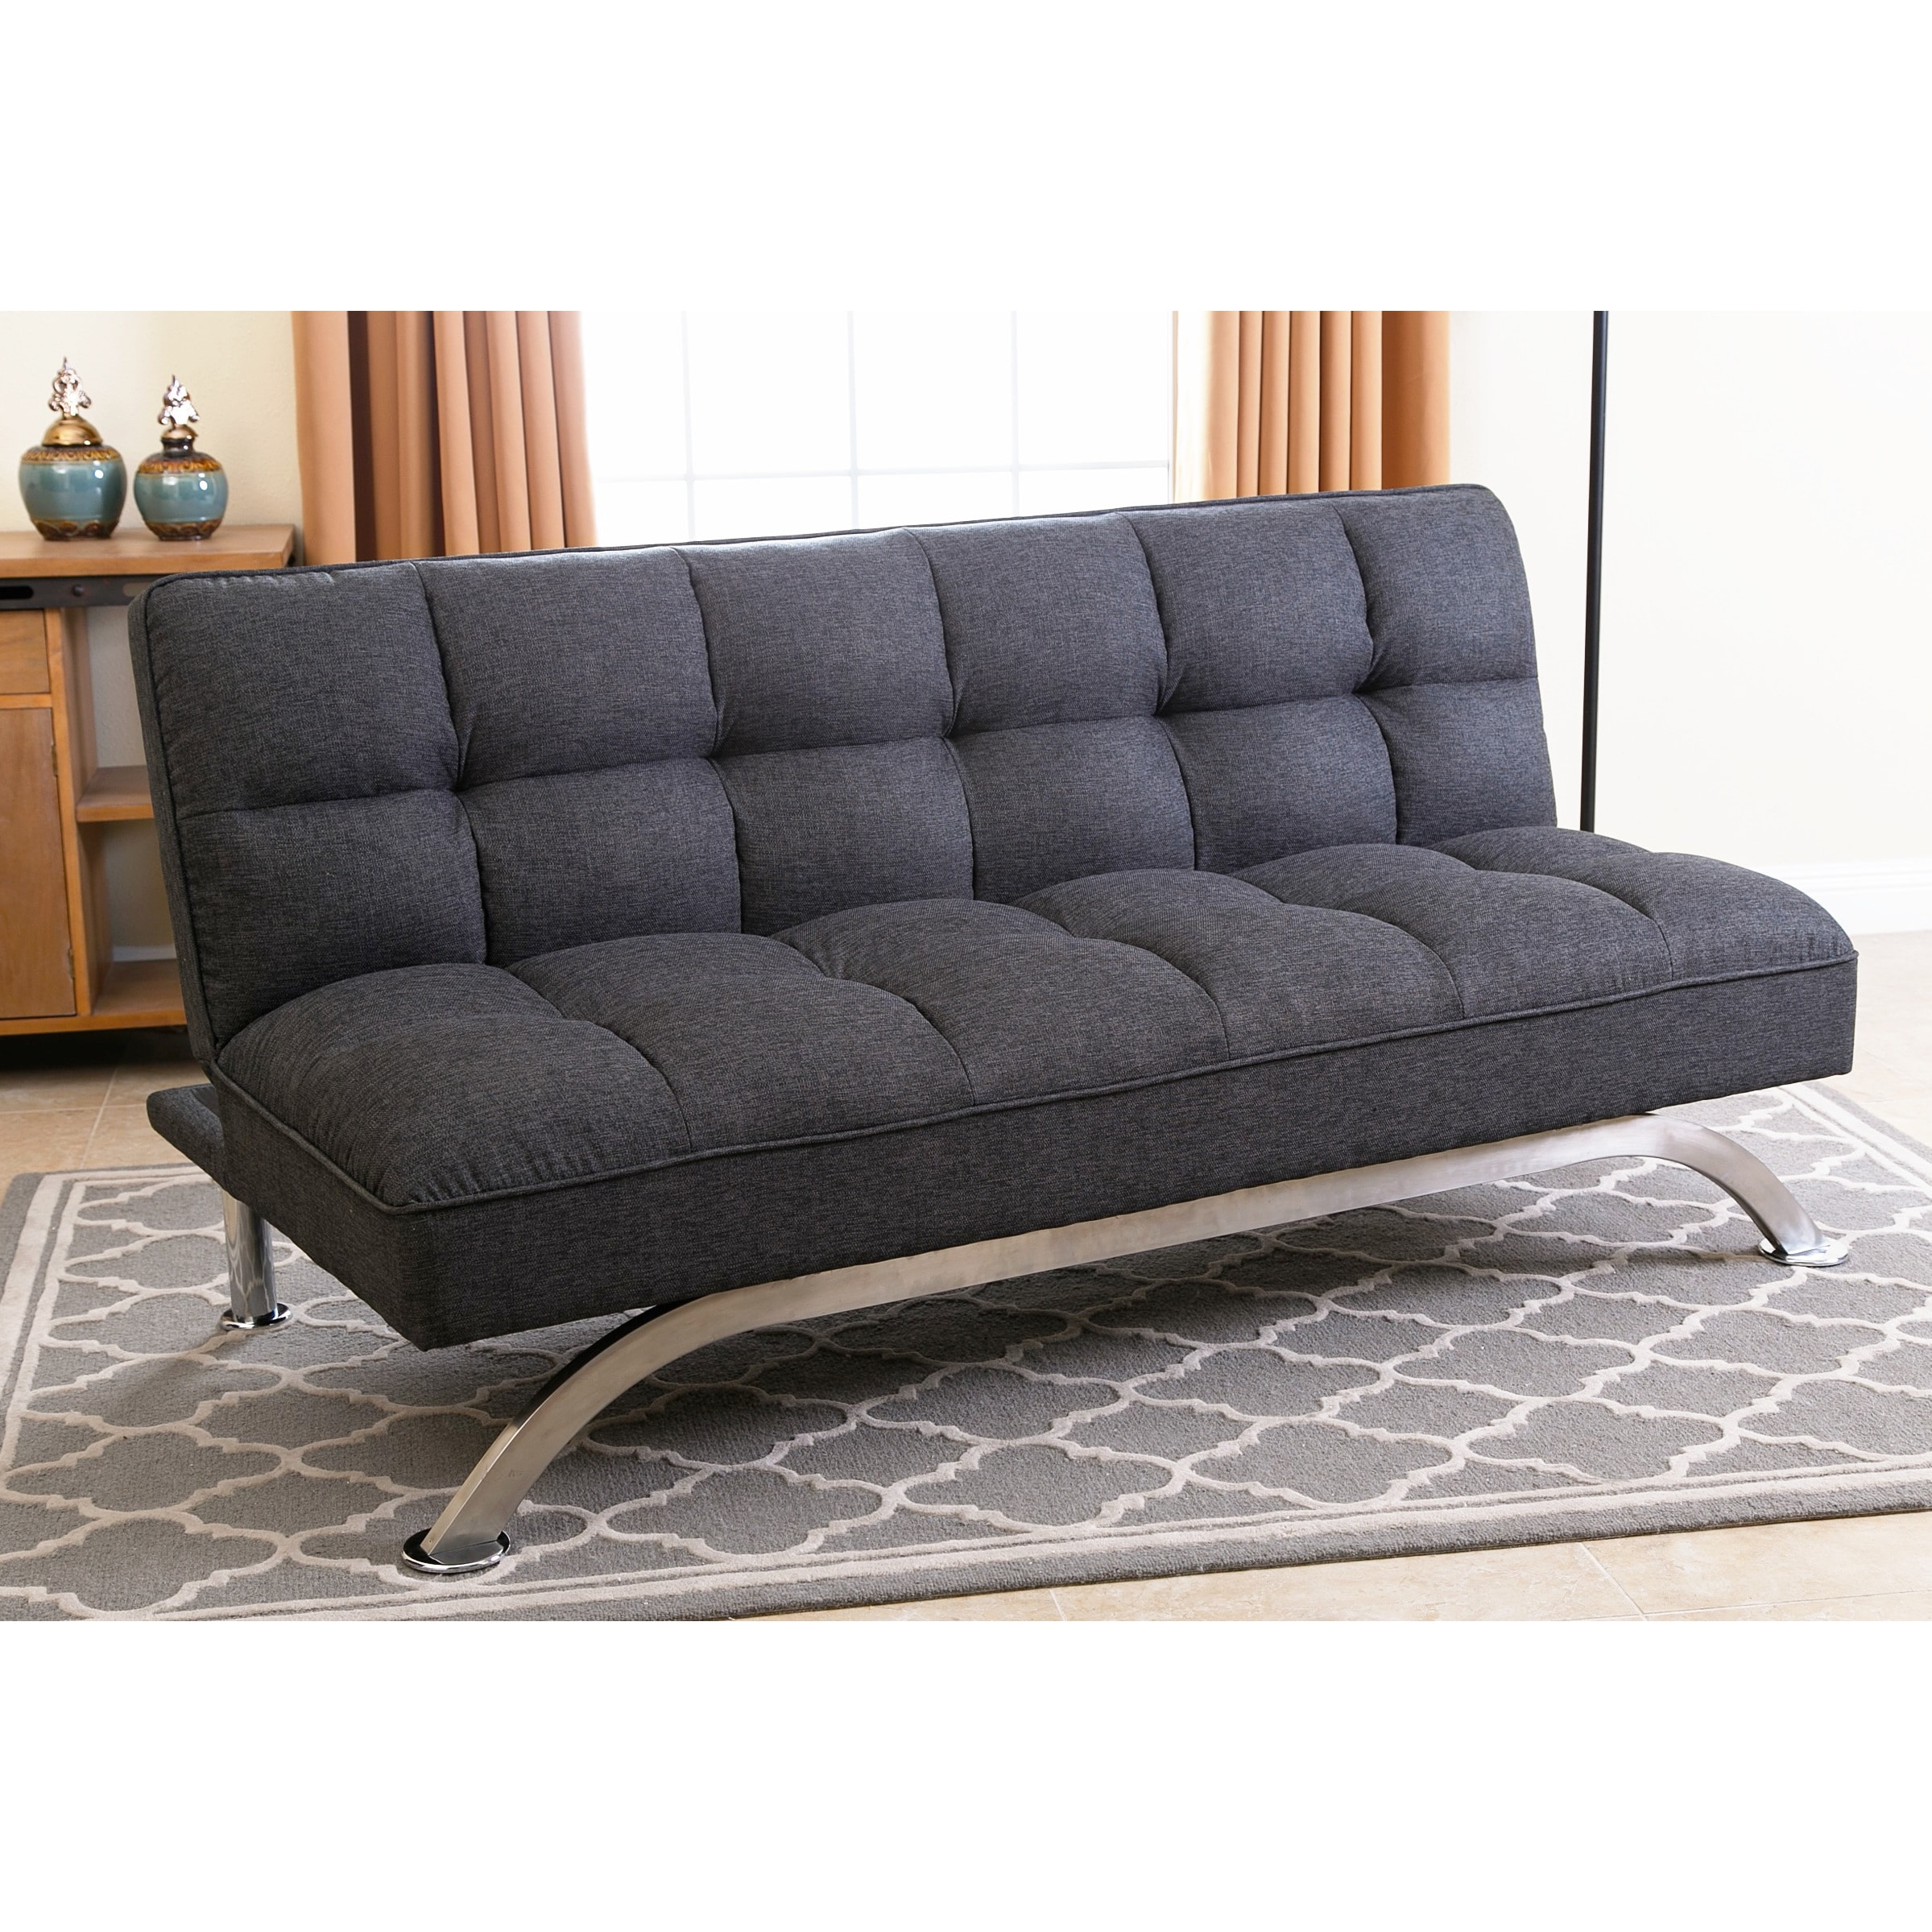 Abbyson Bella Grey Linen Tufted Futon Sofa Bed Free Shipping Today Com 19528131